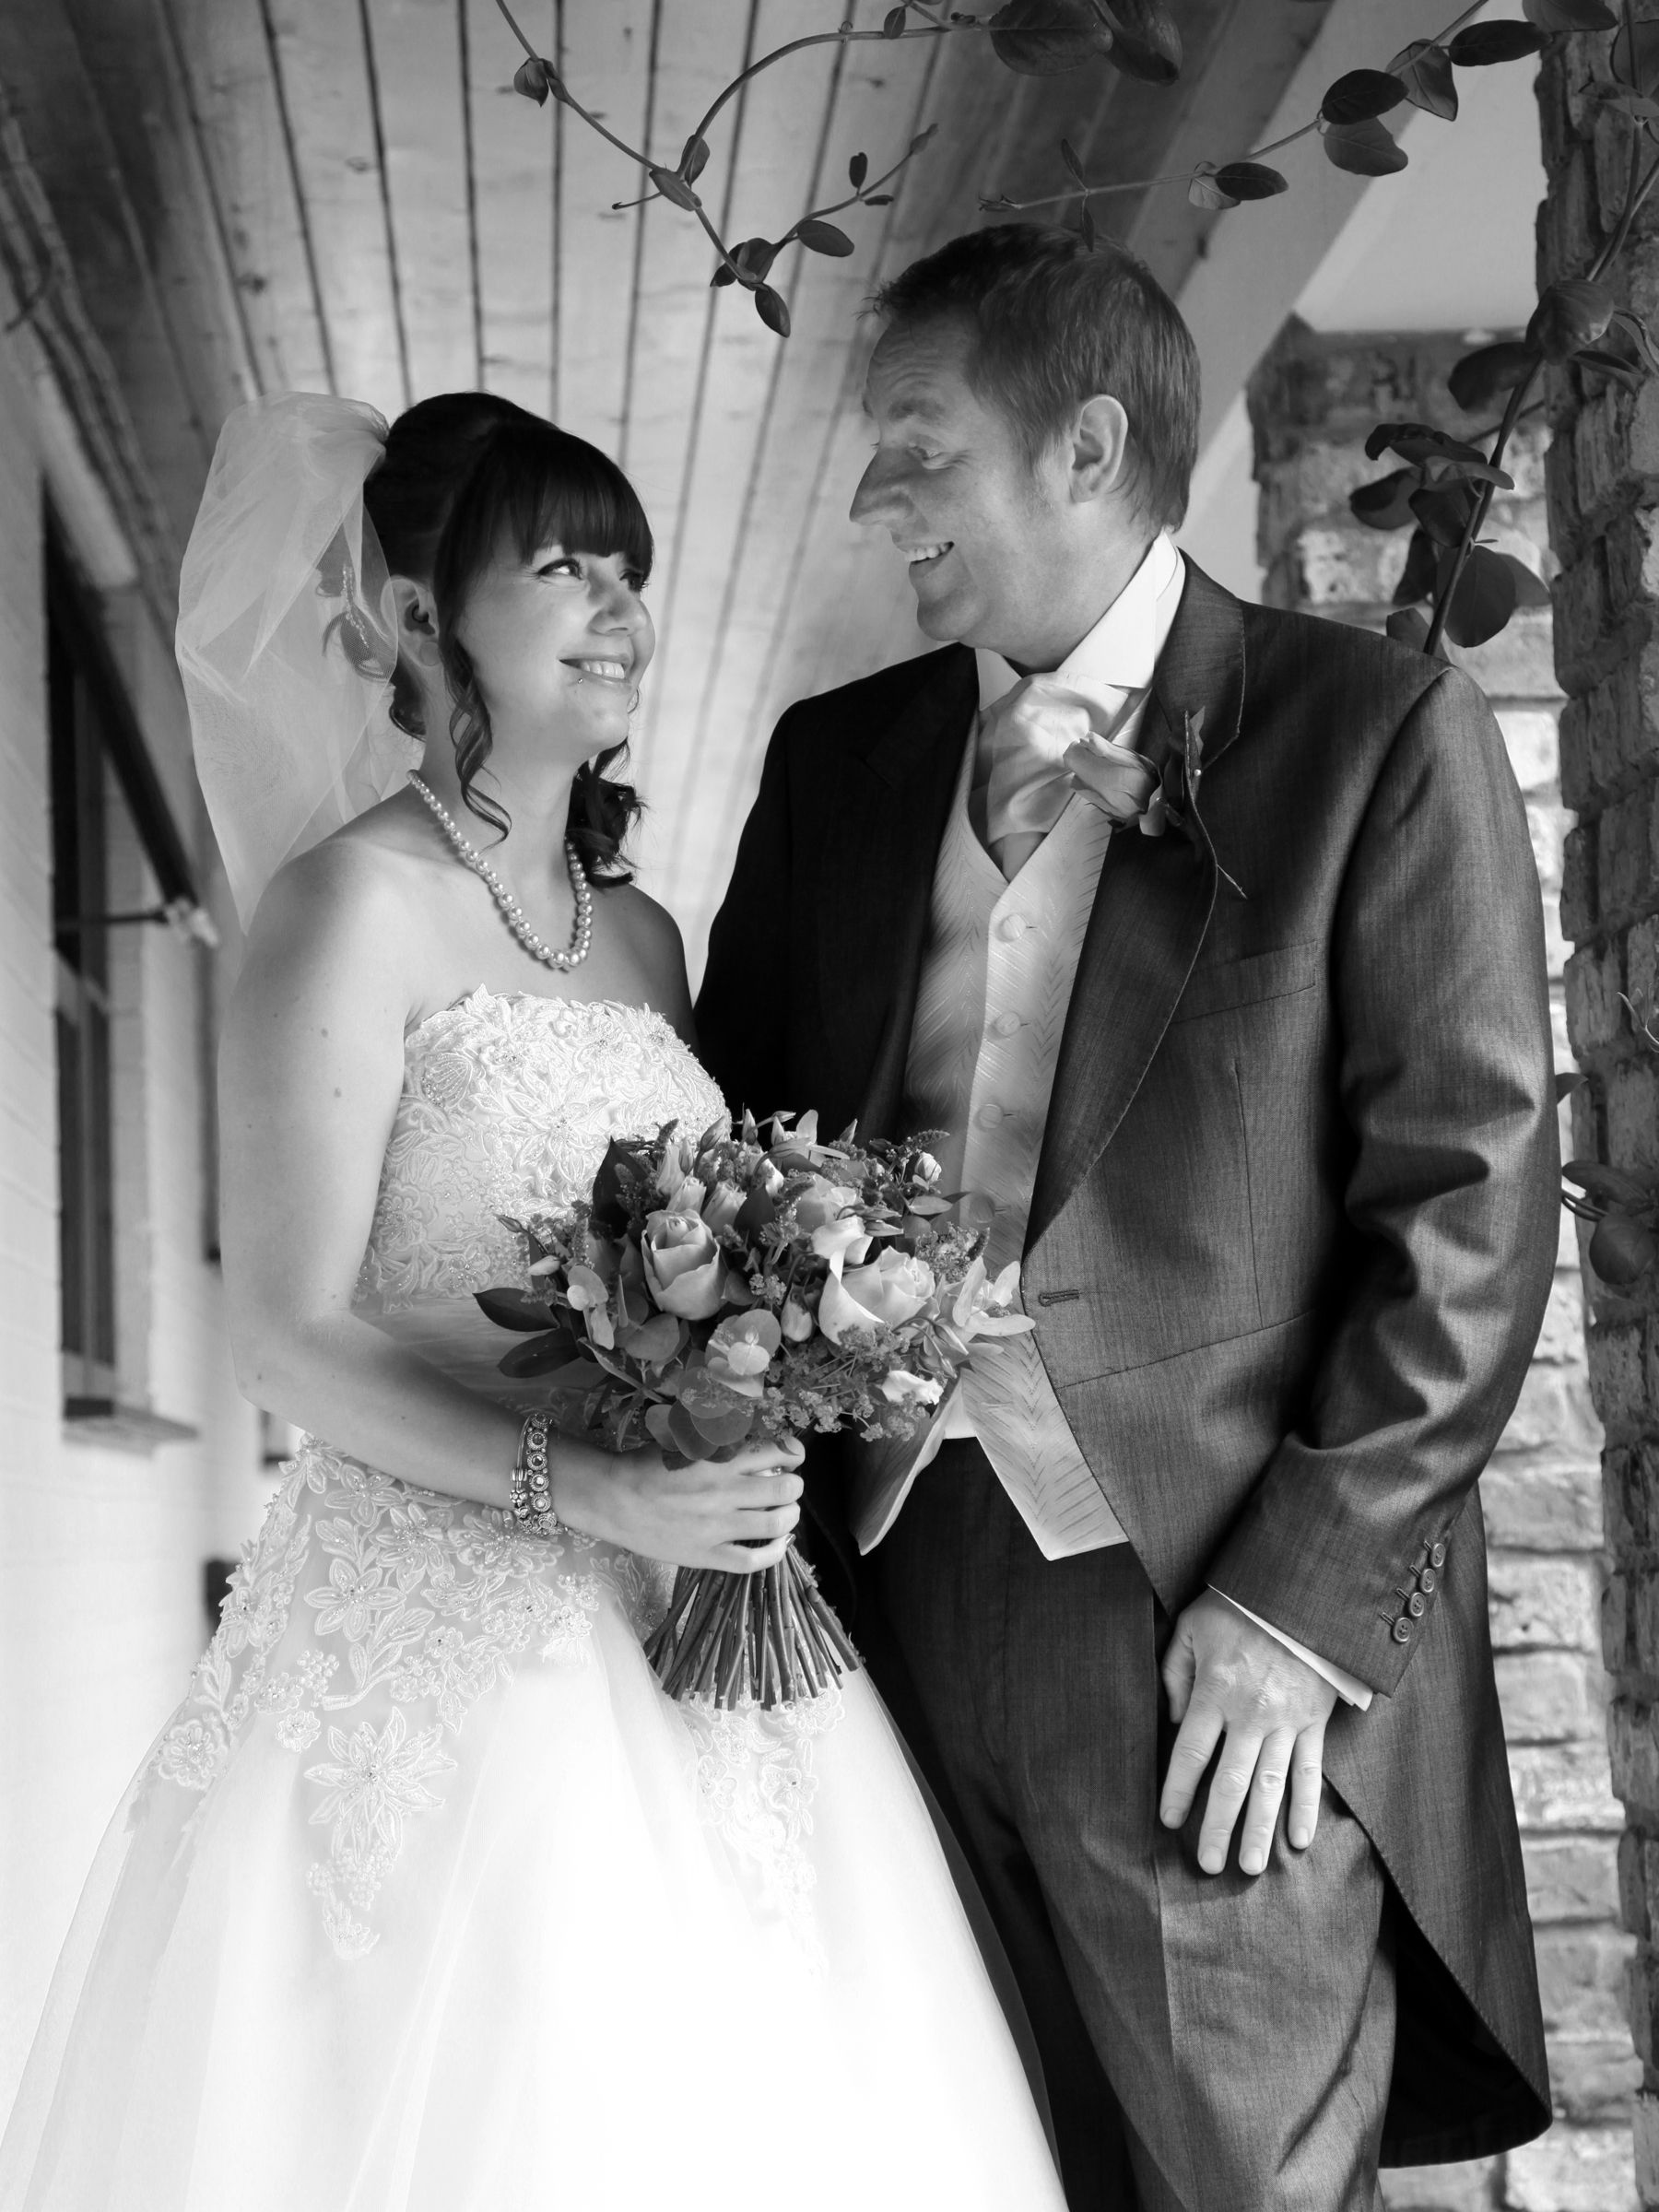 Rudstone Walk Wedding Photography Bride And Dad Black White Stephen Armishaw Photographer Hull Beverley